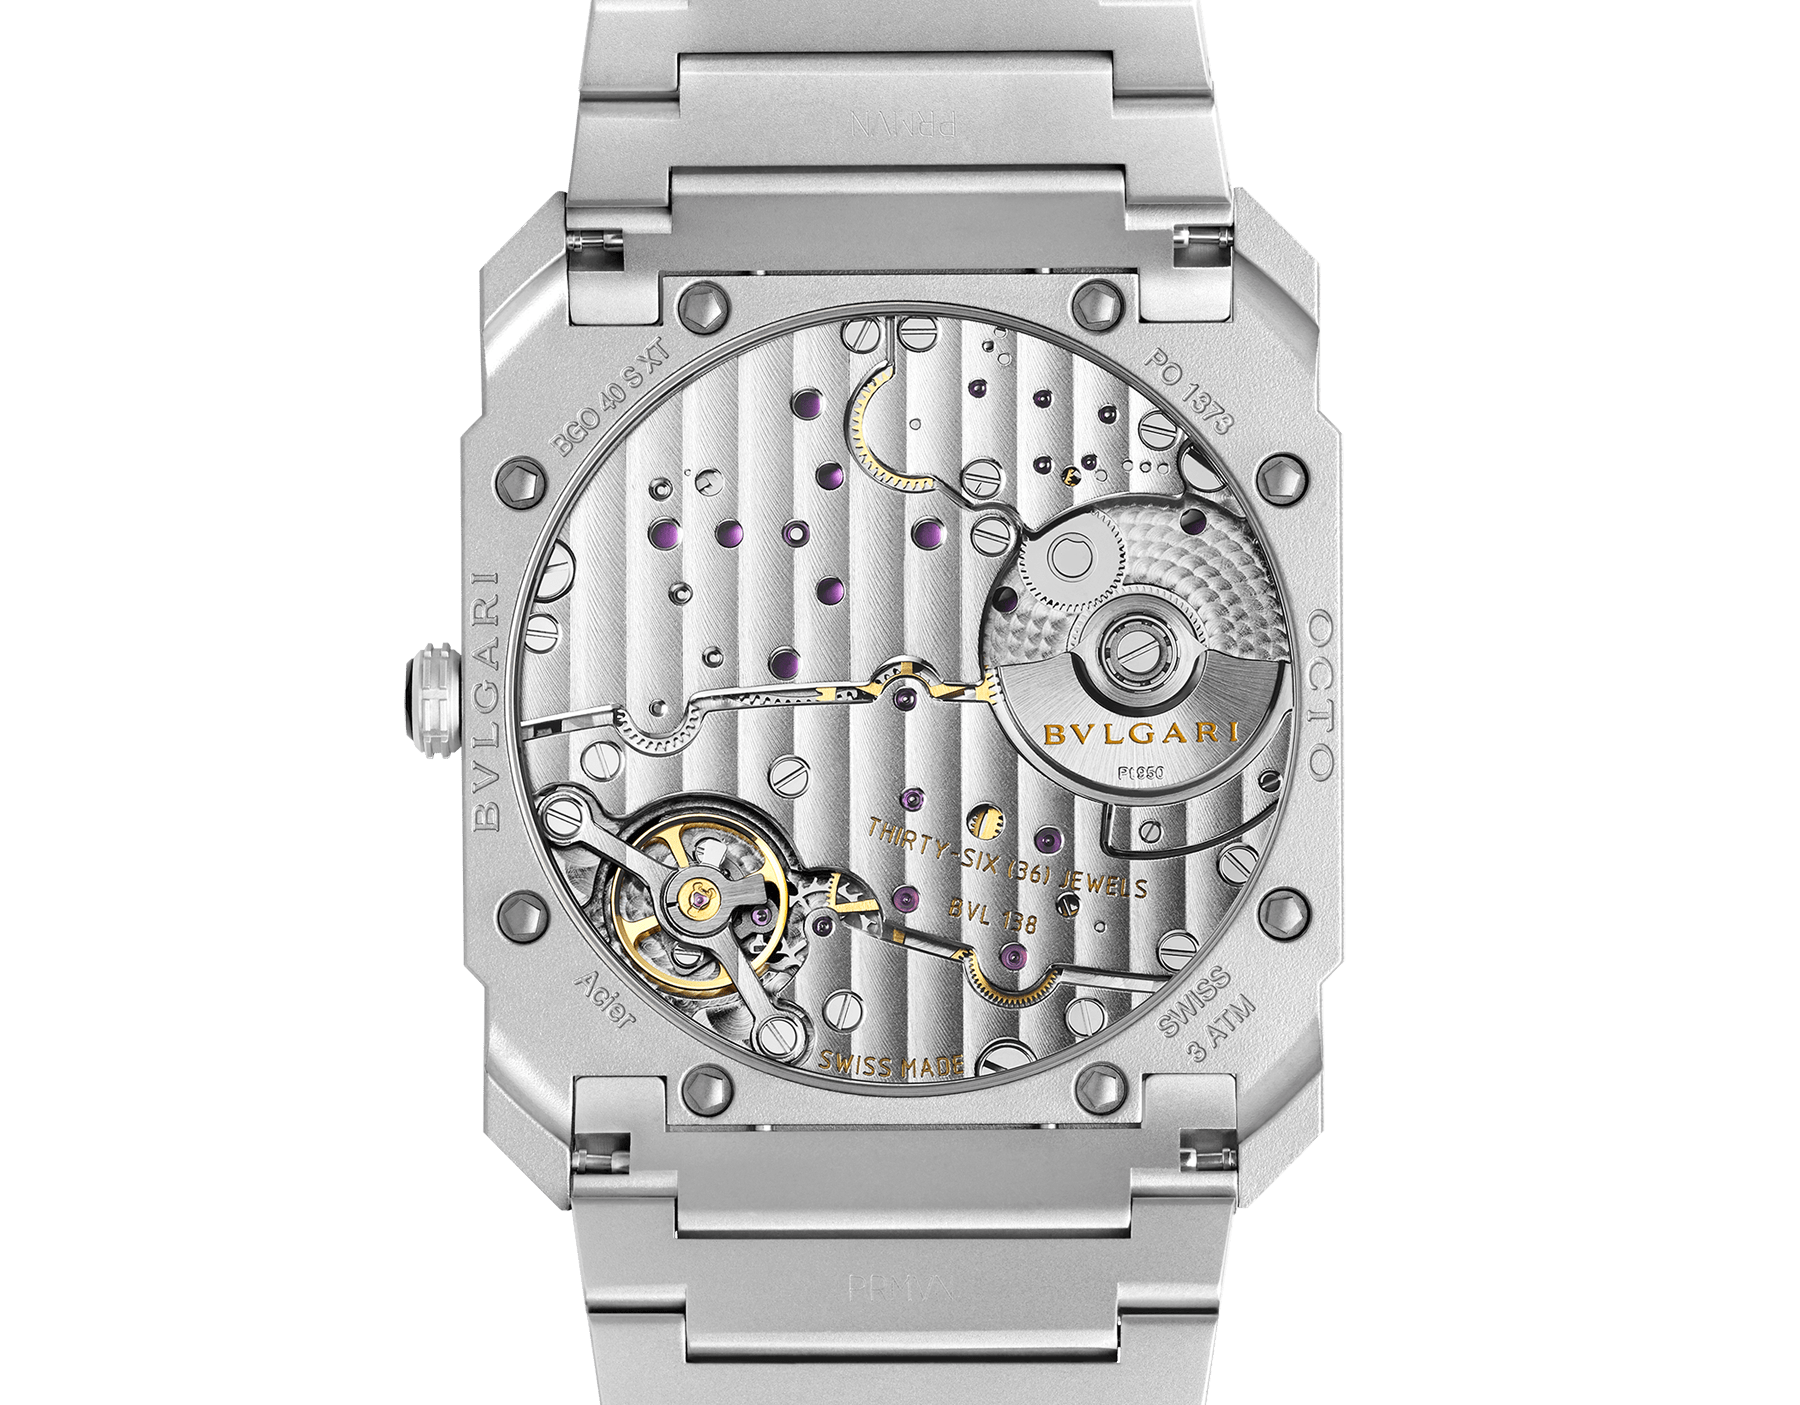 Octo Finissimo Automatic watch with mechanical manufacture movement, automatic winding, platinum microrotor, small seconds, extra-thin stainless steel case, dial and bracelet 103011 image 4